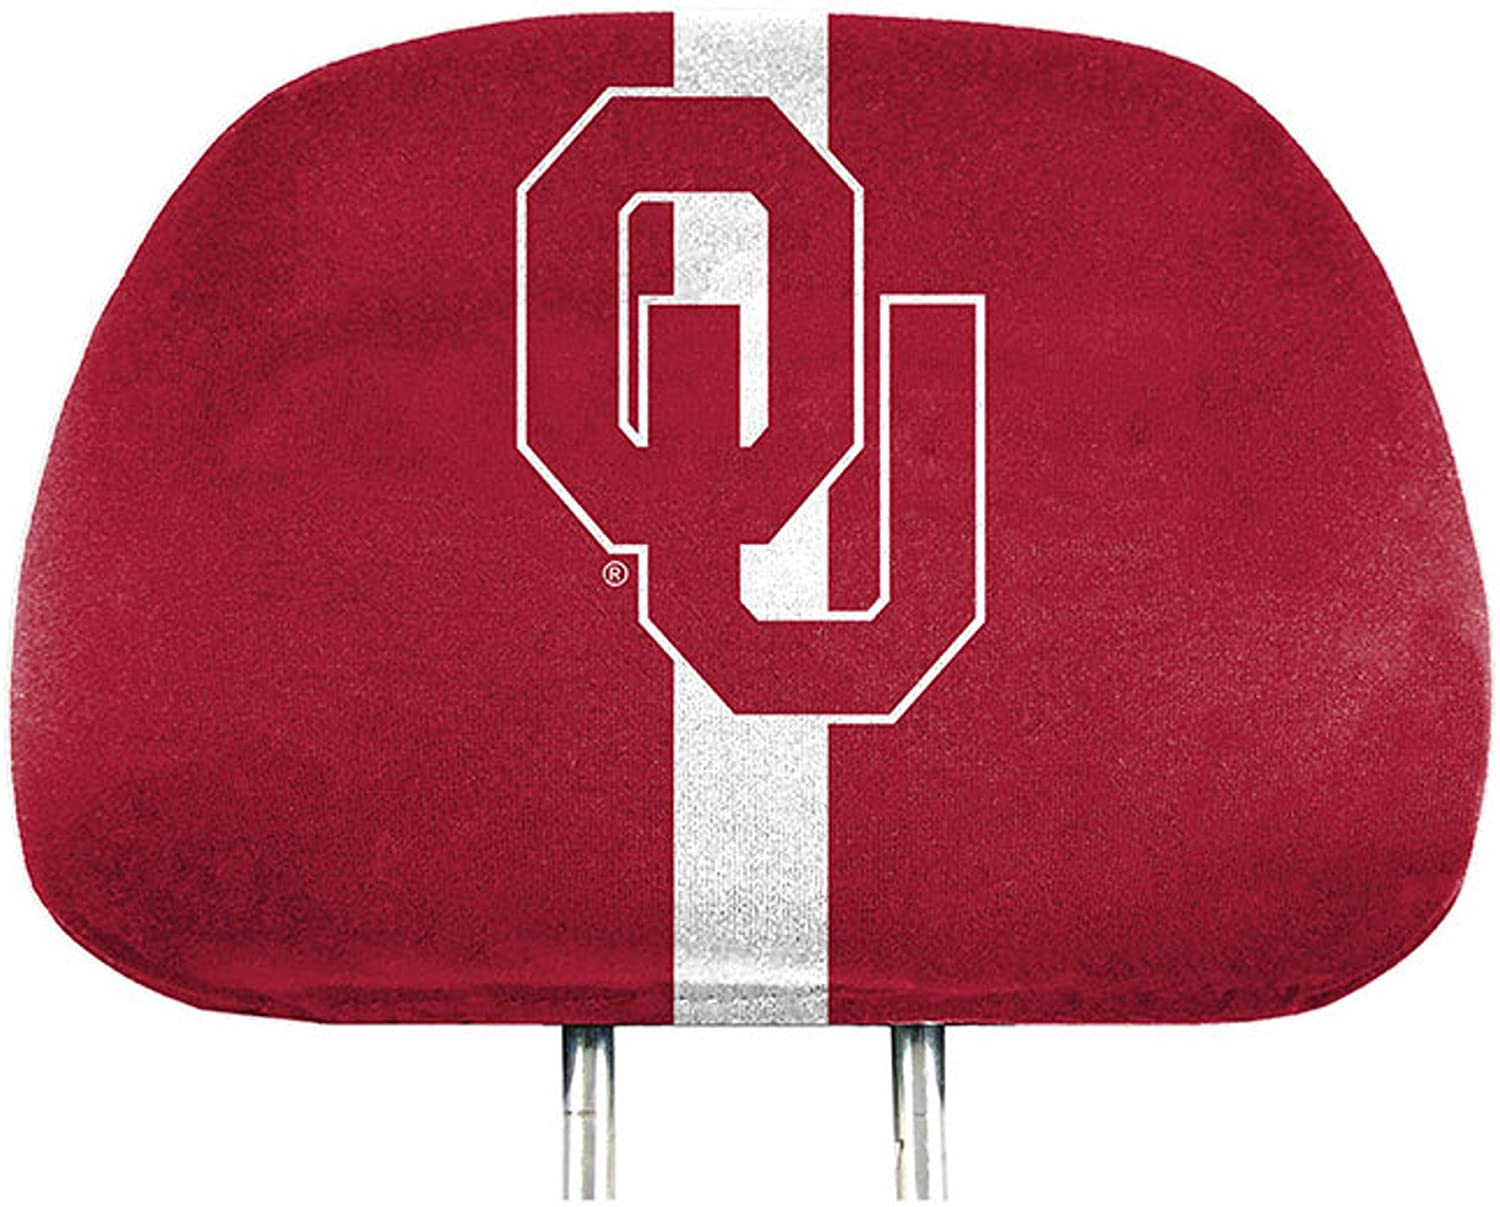 Oklahoma Sooners PRINTED Color Elastic Auto Head Rest Covers Pair University of